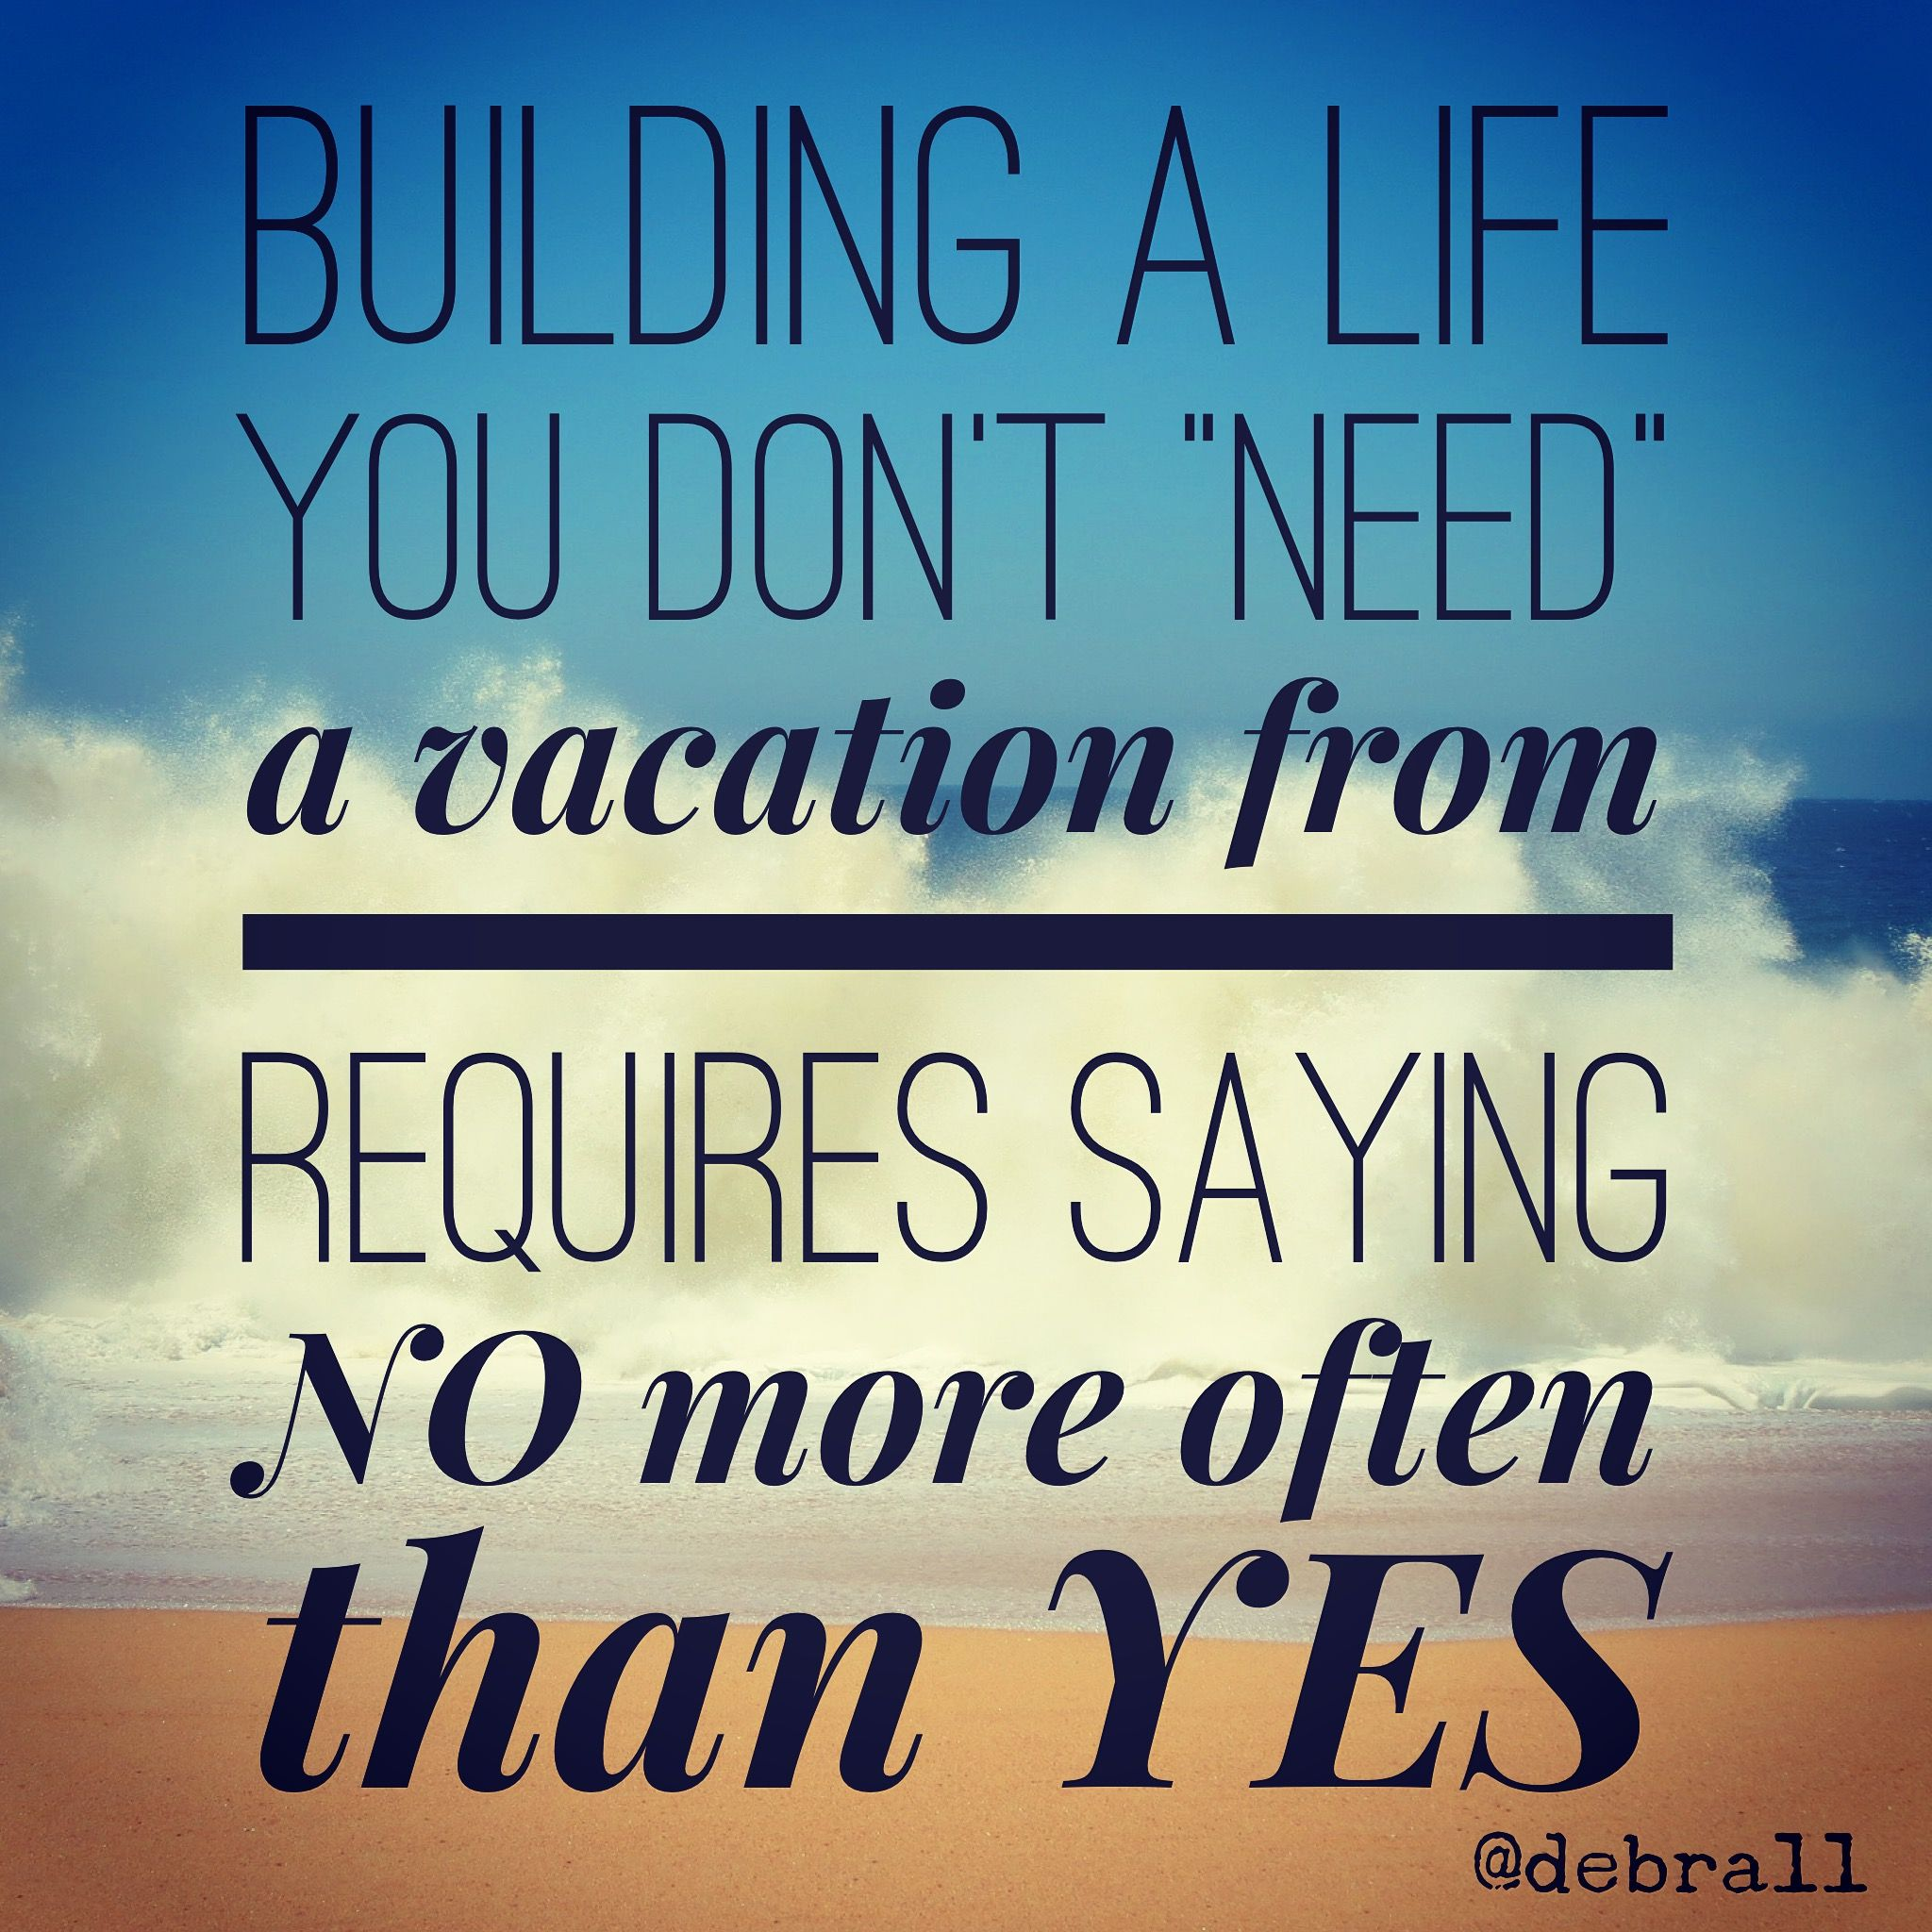 Vacation Quotes Building A Life You Don't Need A Vacation From Requires Saying No